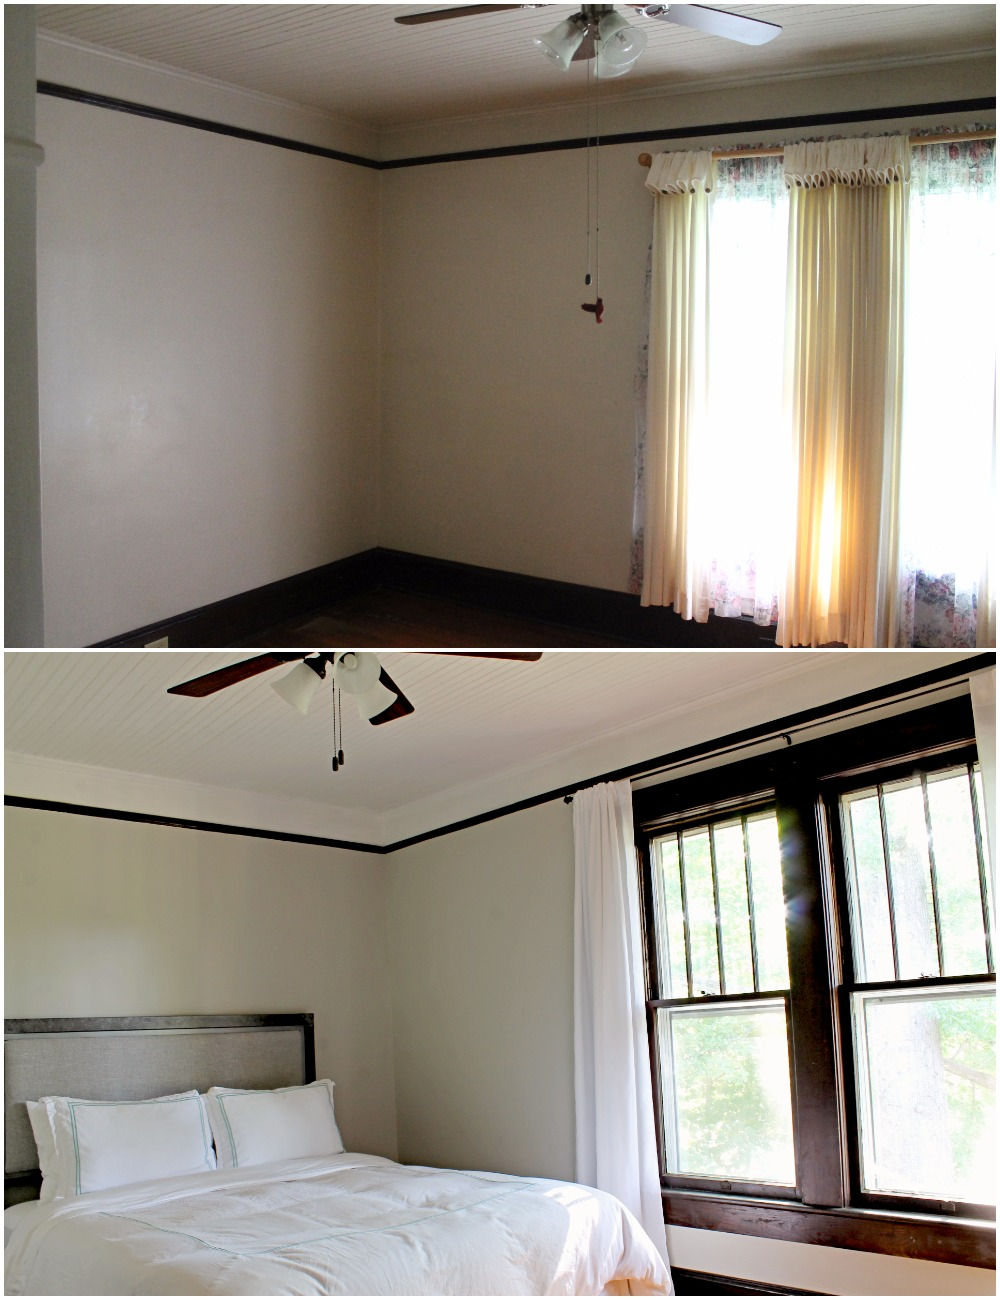 House Flipping Before and Afters - DIY BUDGET BEDROOM IDEAS (1).jpg